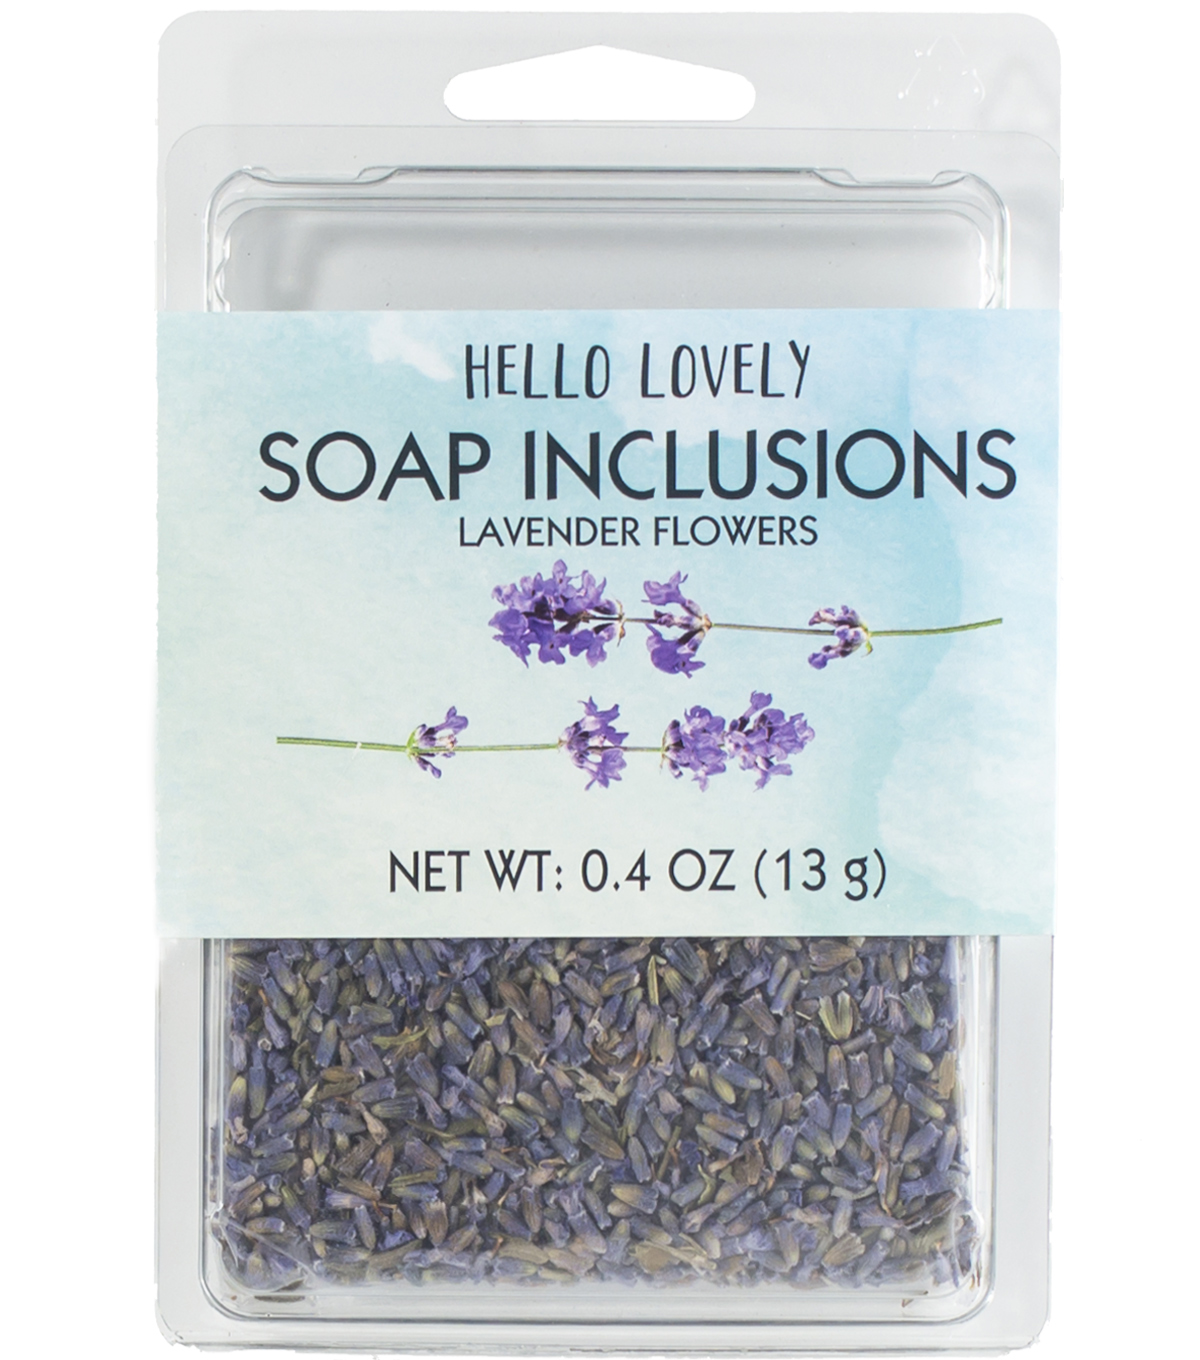 Hello Lovely 0.4 oz. Beauty Soap Inclusions Lavender Flowers